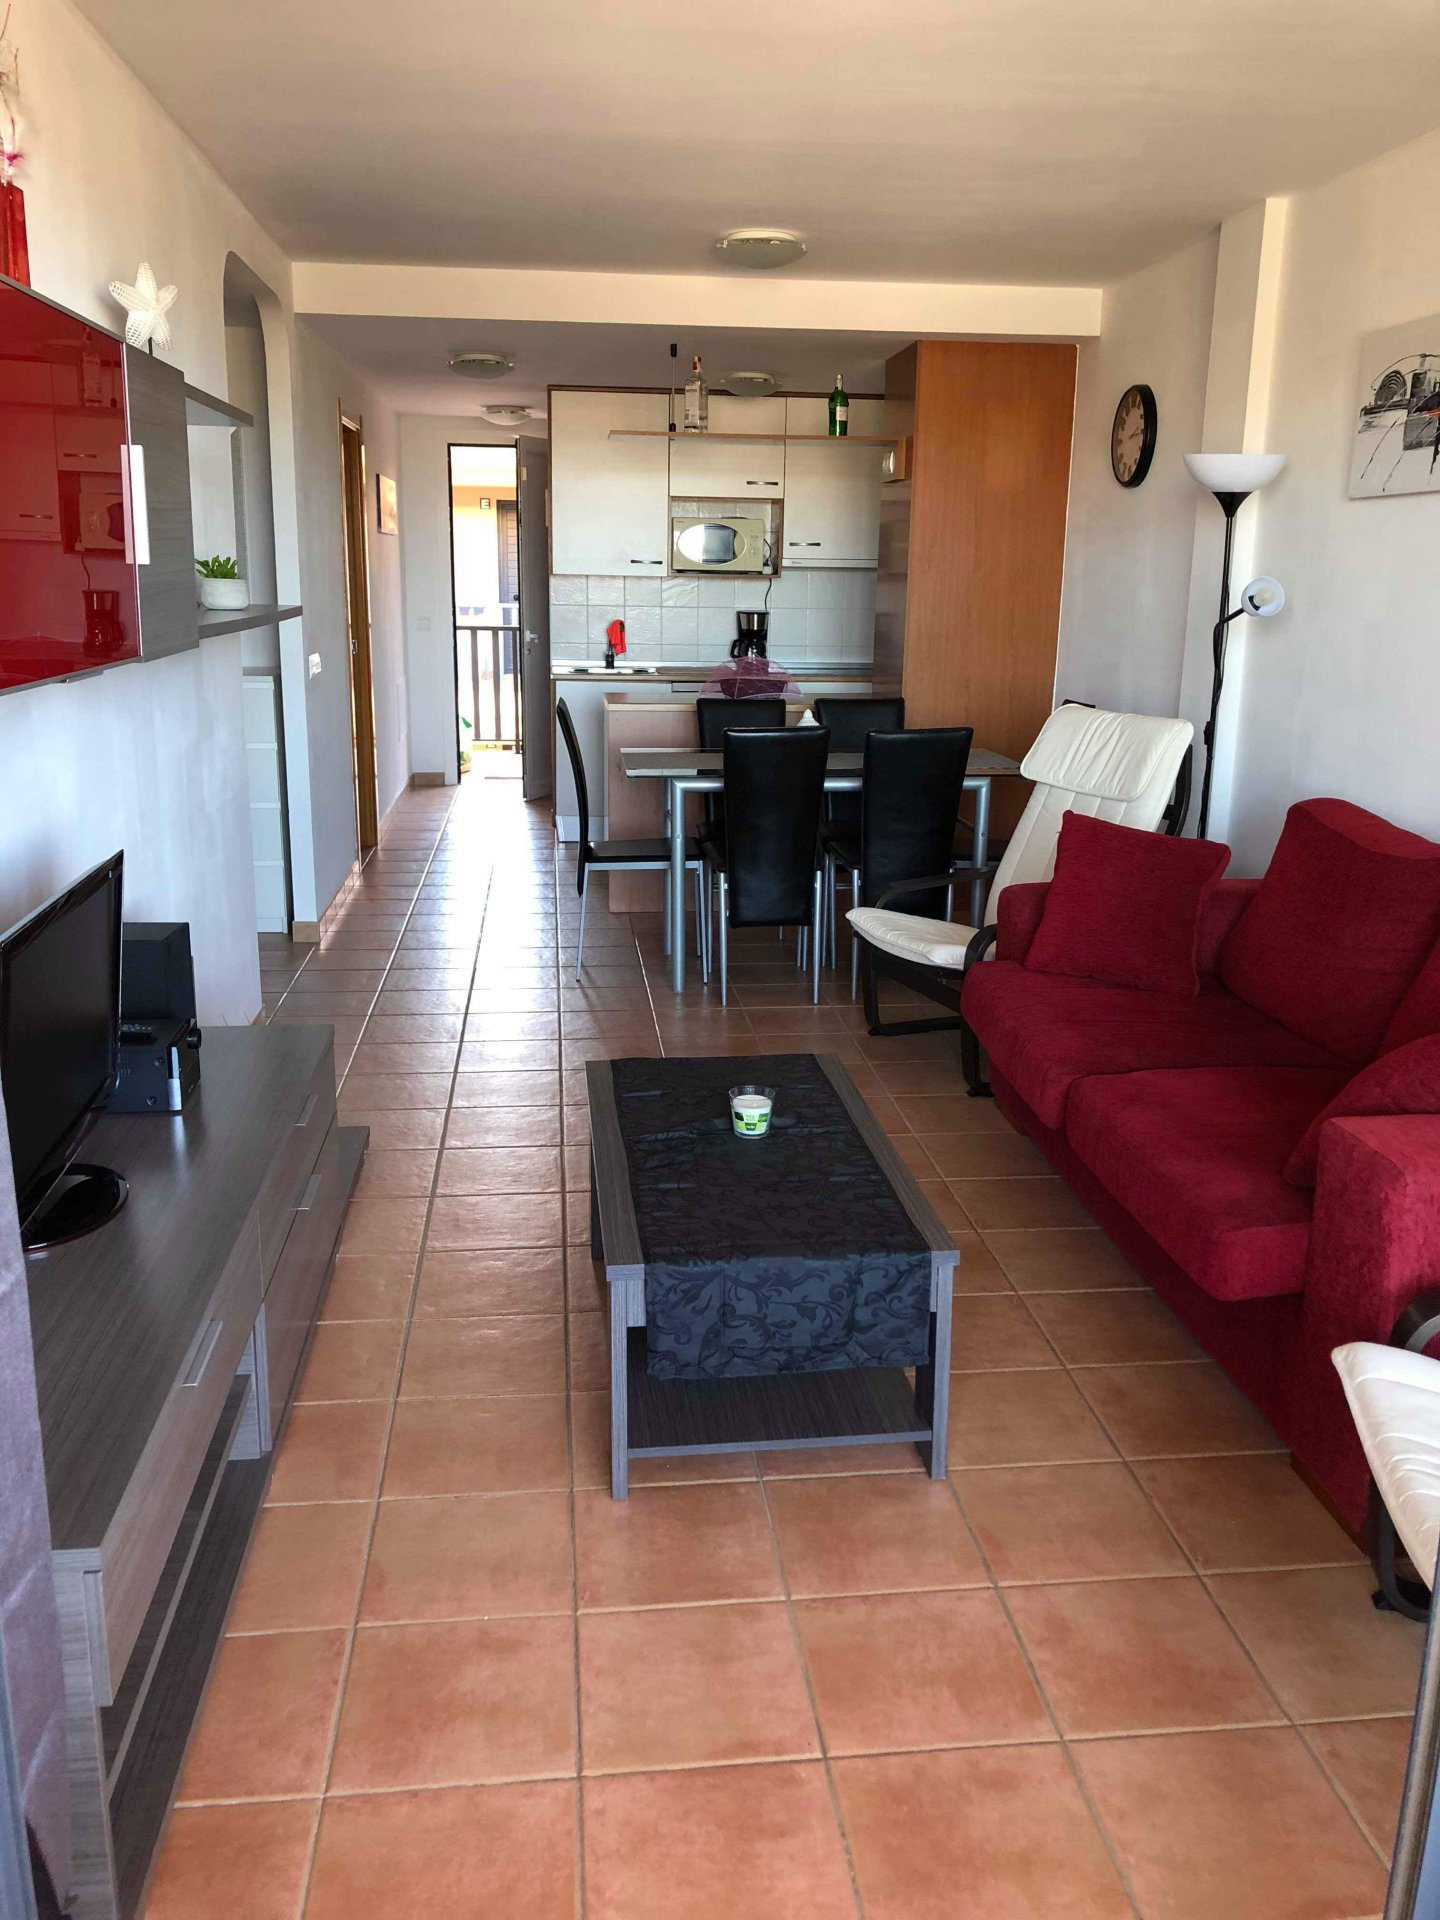 Wonderful holiday apartment in Playa Paraiso!